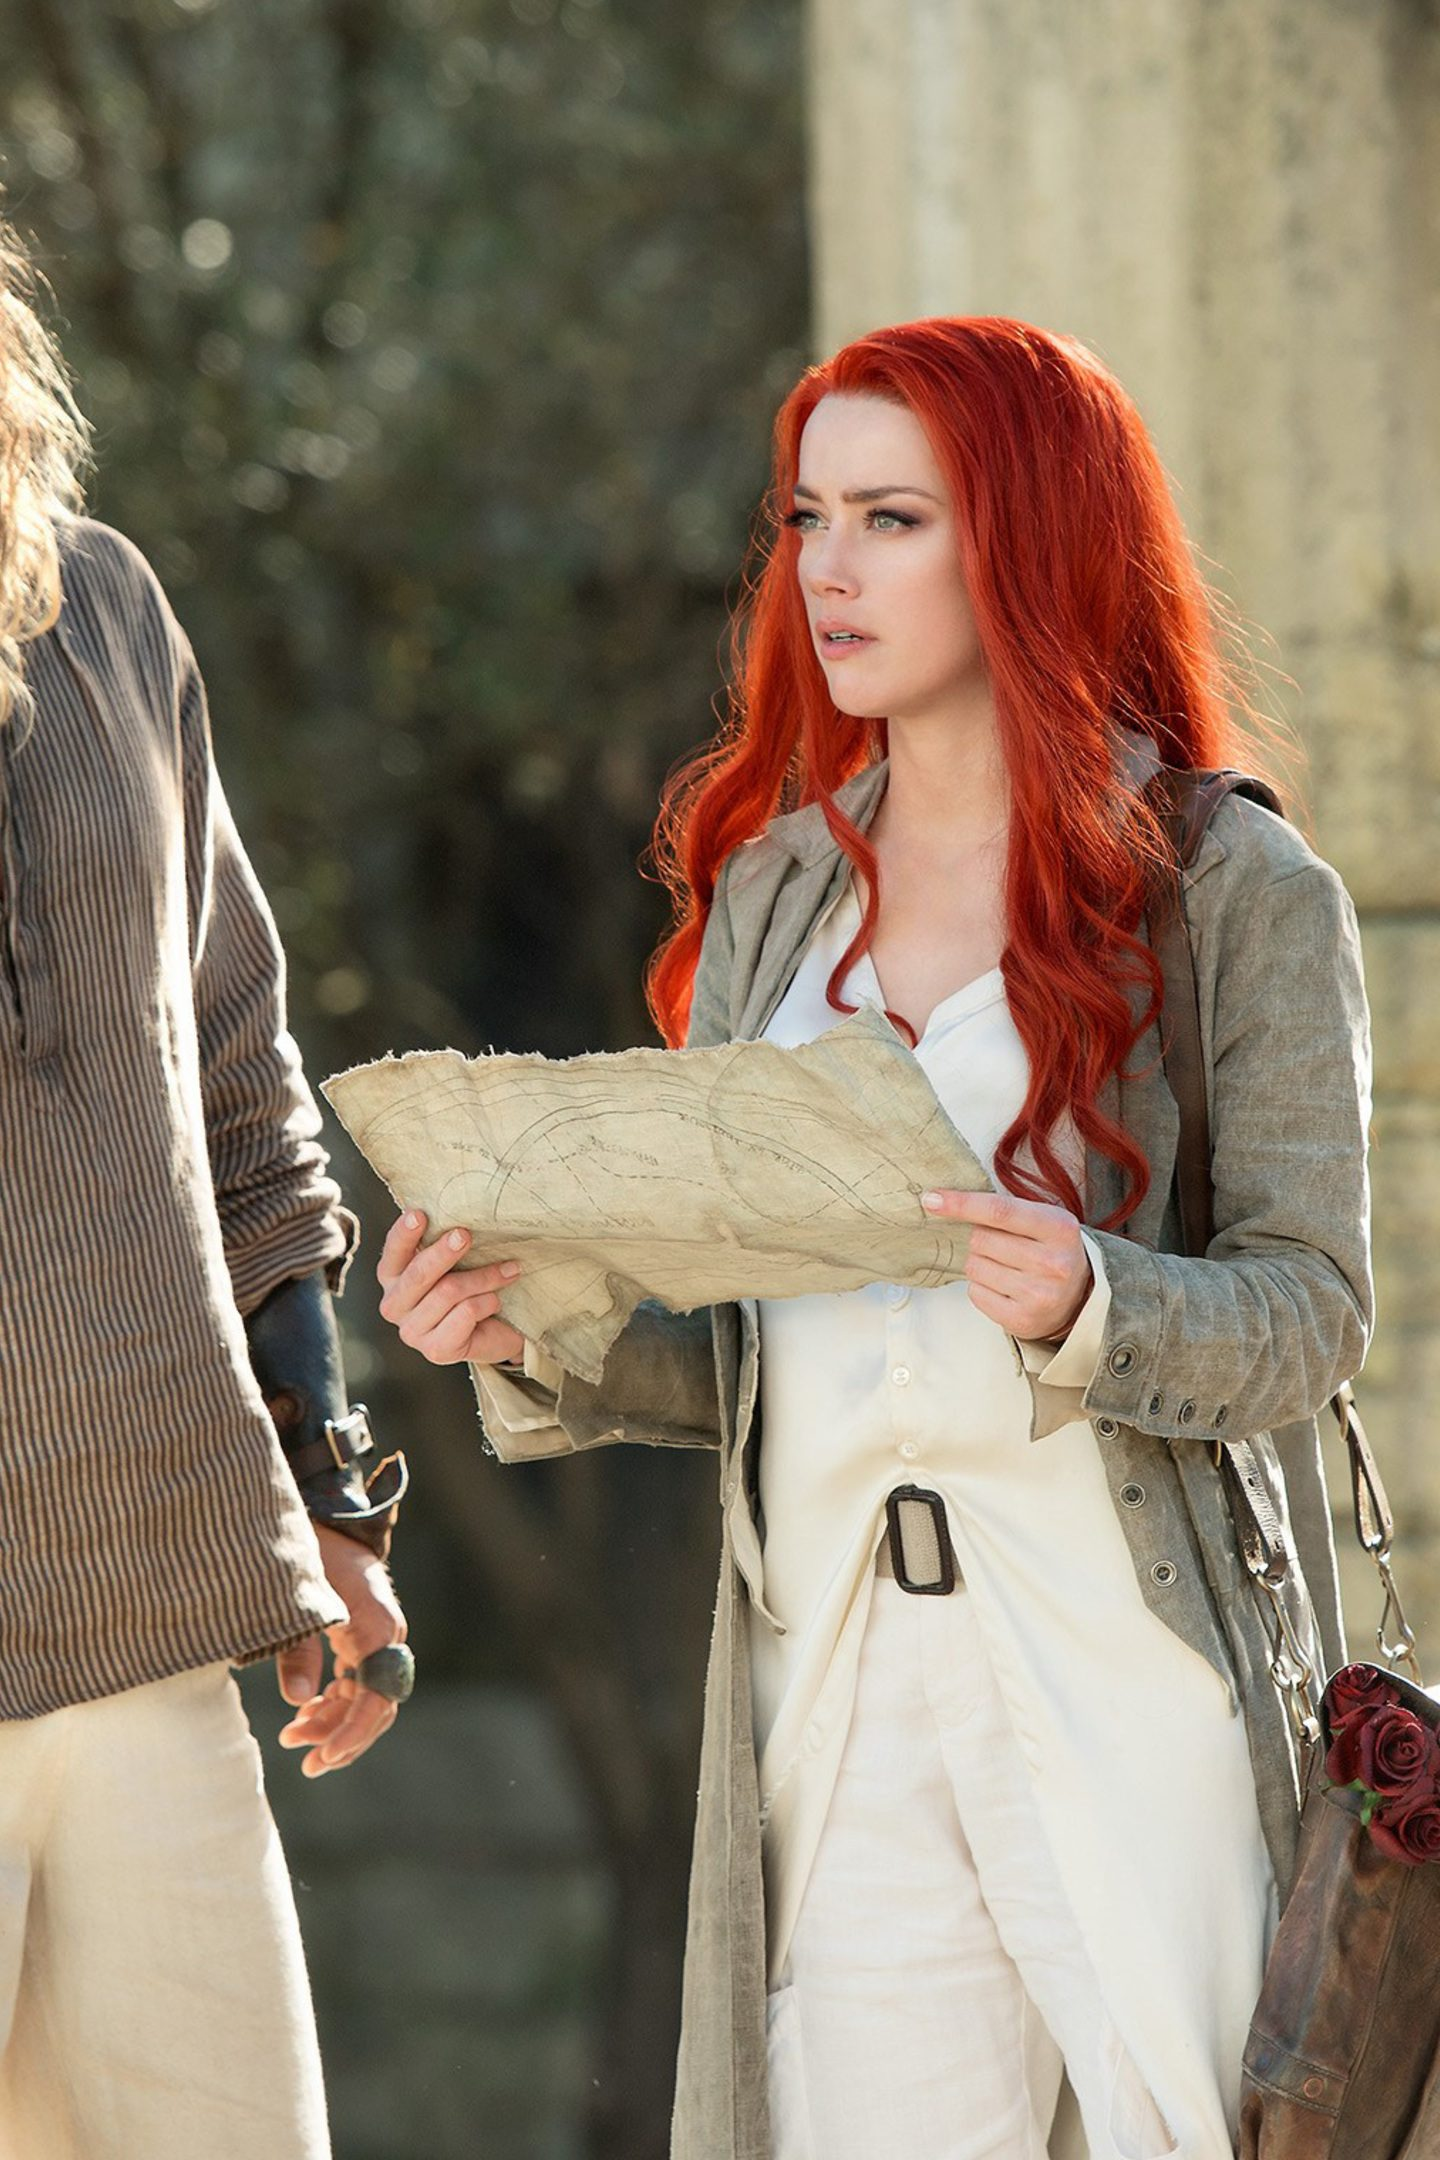 Arthur Curry and Mera in Aquaman 2018 4K Wallpaper   Best Wallpapers 1440x2160